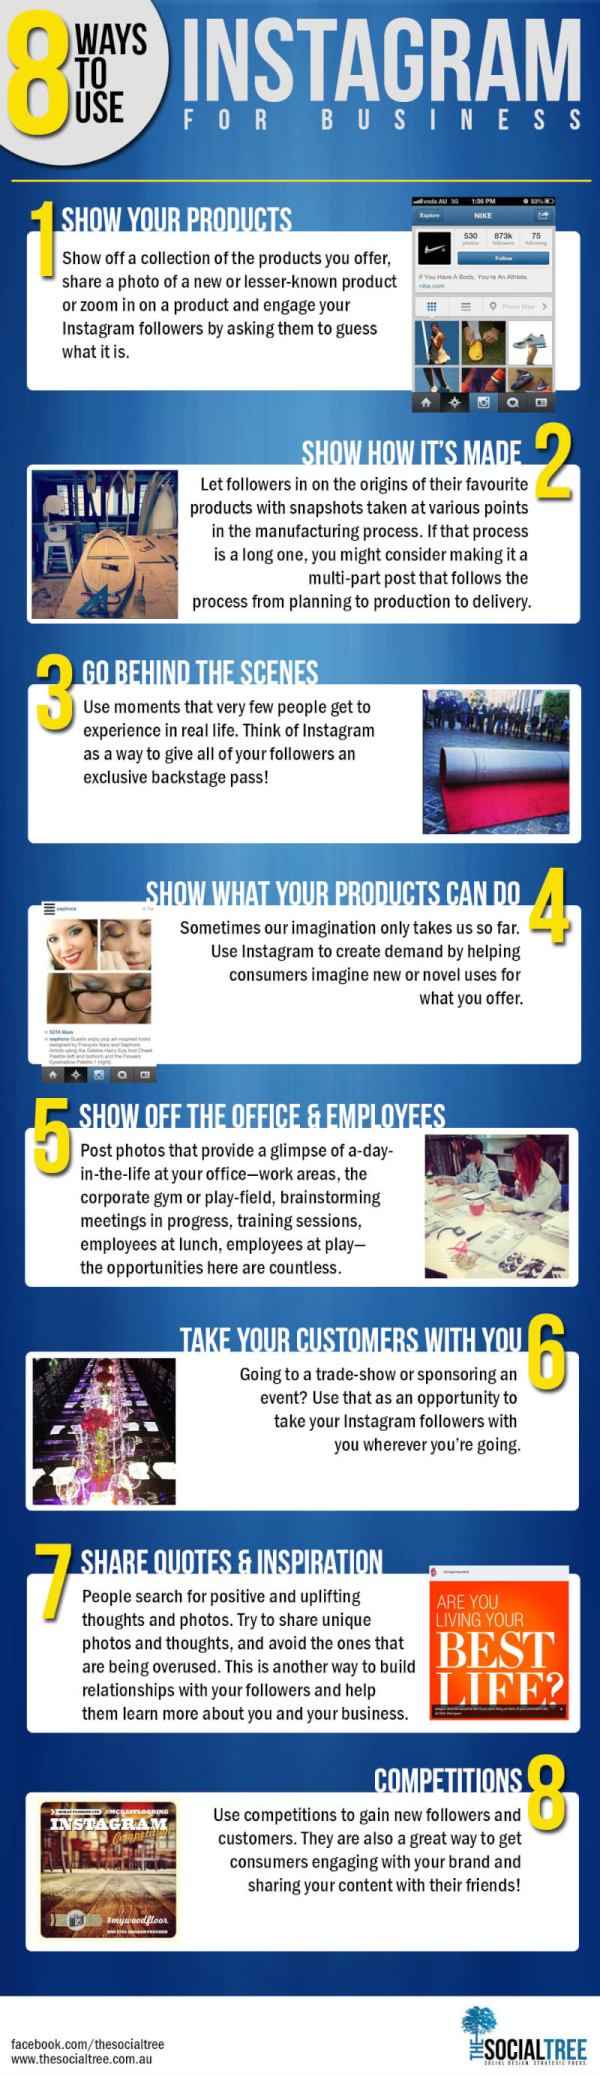 8-ways-to-use-instagram-for-business